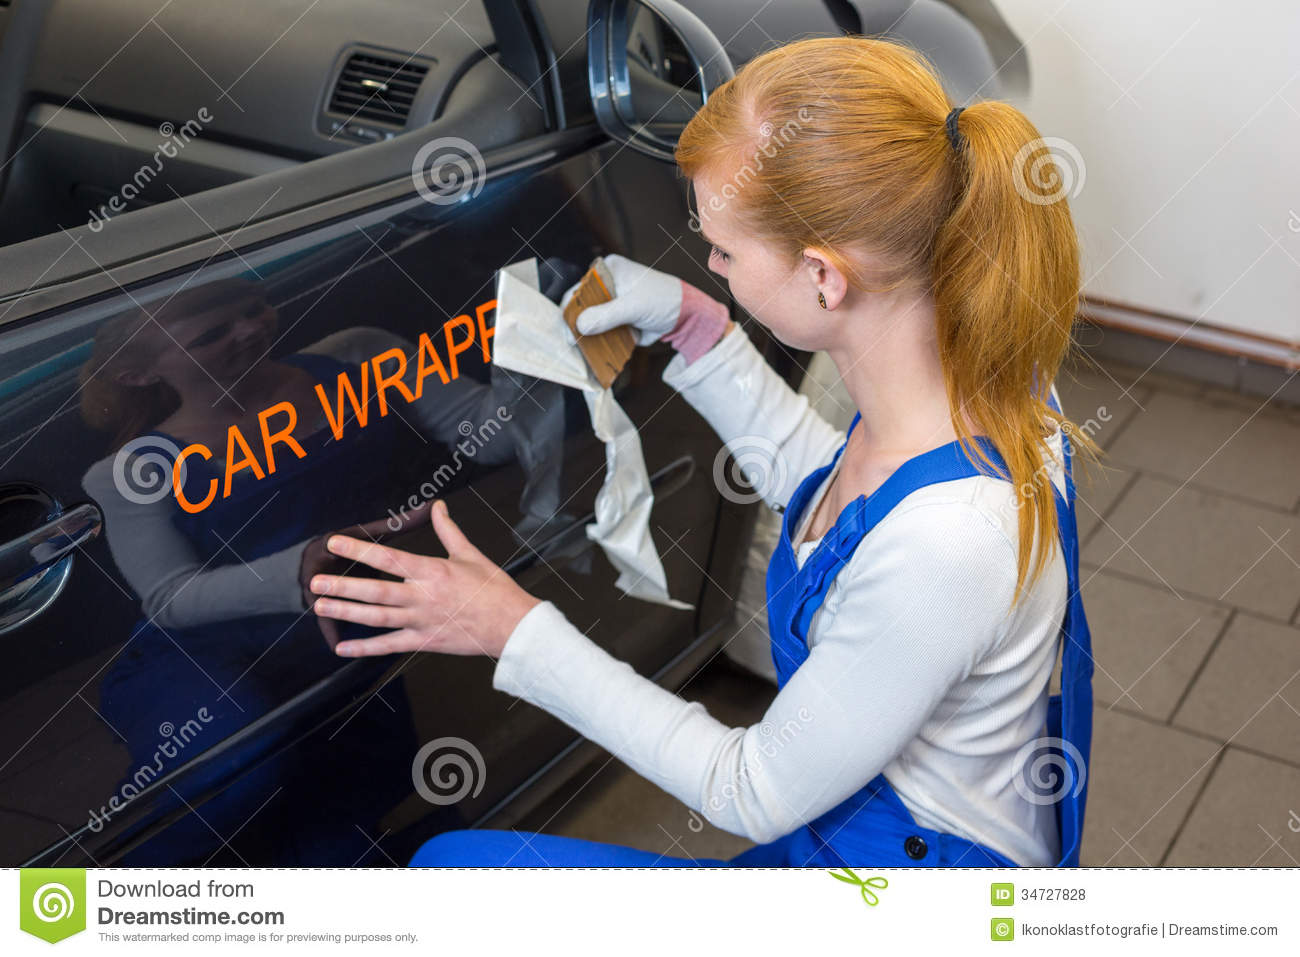 Car Branding Specialist Puts Logo With Car Wrapping Film On Automobile Stock Photo Image Of Garage Body 34727828